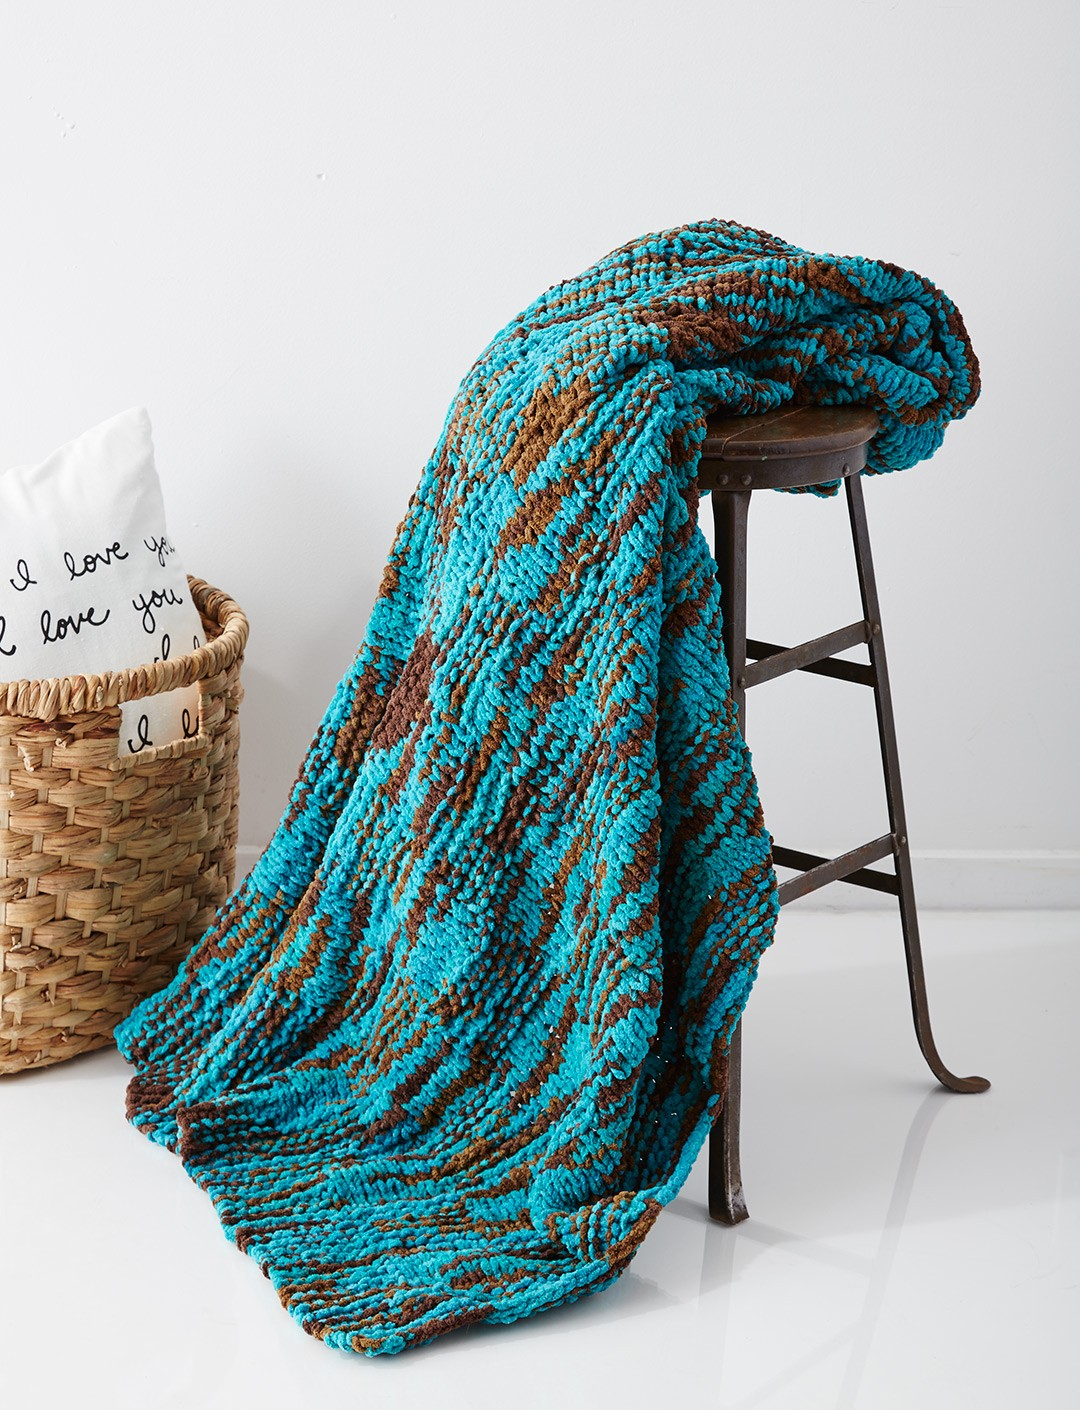 Bernat Big Basketweave Blanket, Knit Pattern Yarnspirations